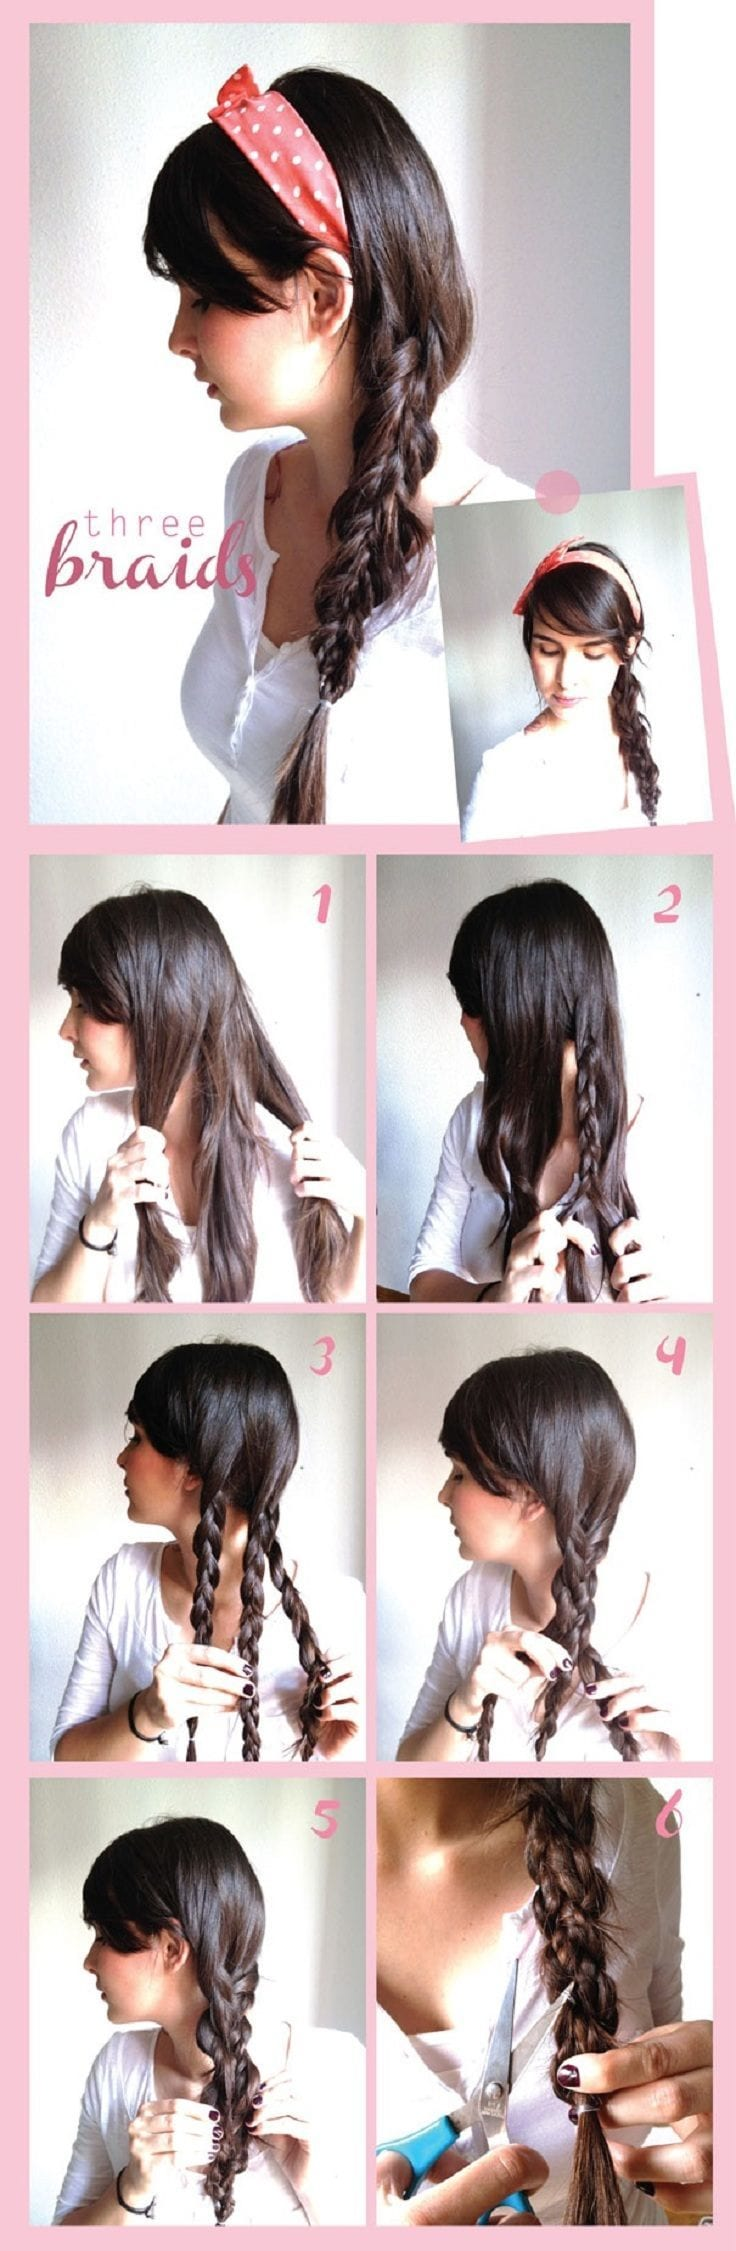 Three-Braids-Hair-Do 20 Cute and Easy Braided Hairstyle Tutorials